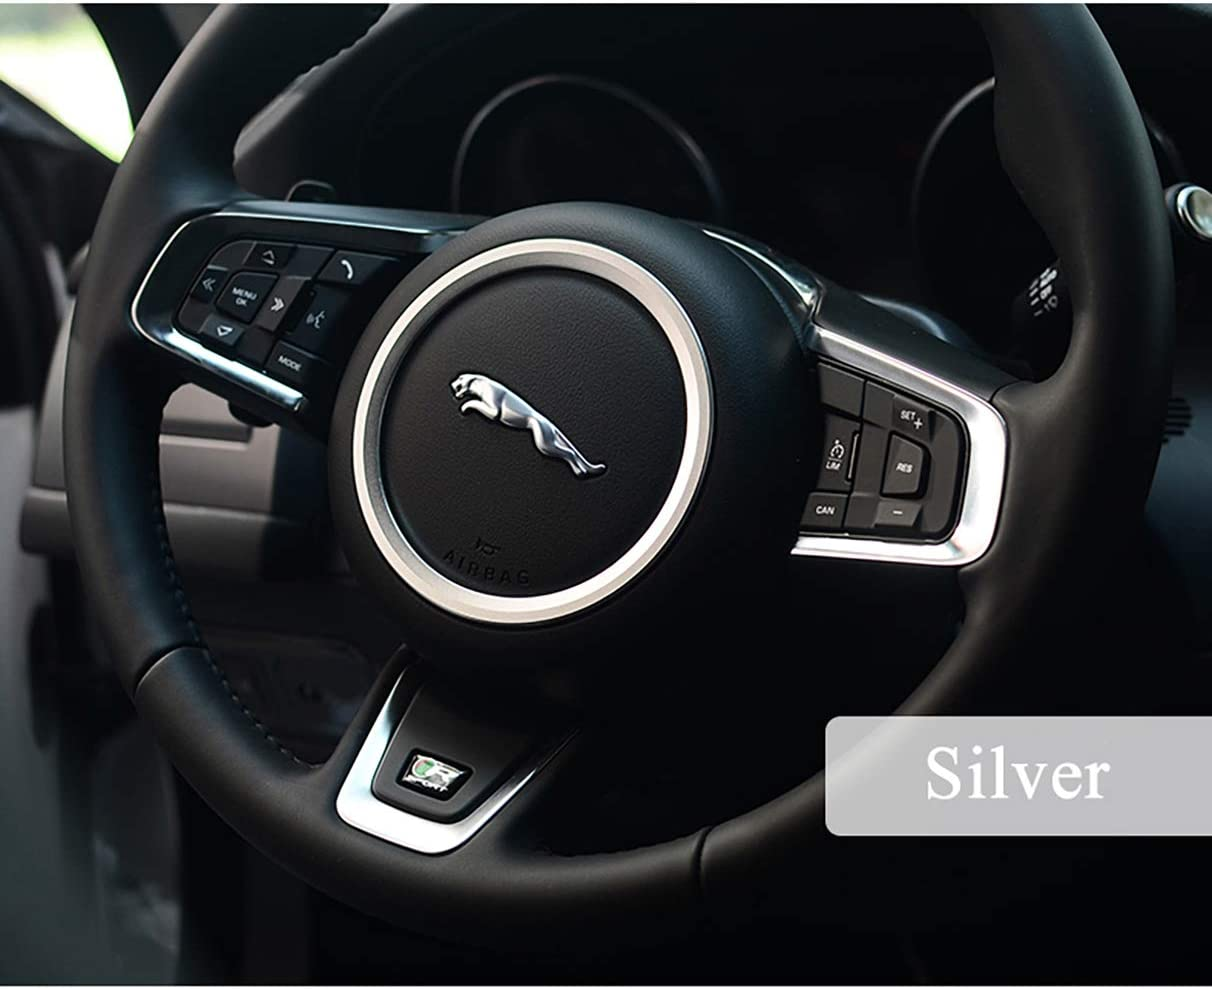 Car Interior Bling Accessories for Jaguar XJ F-pace F-Type XE XF Car Steering Wheel Logo Decorative Circle 3D Rhinestone Decals Ring Car Bling Accessories Suitable for Ladies Silver, B Style